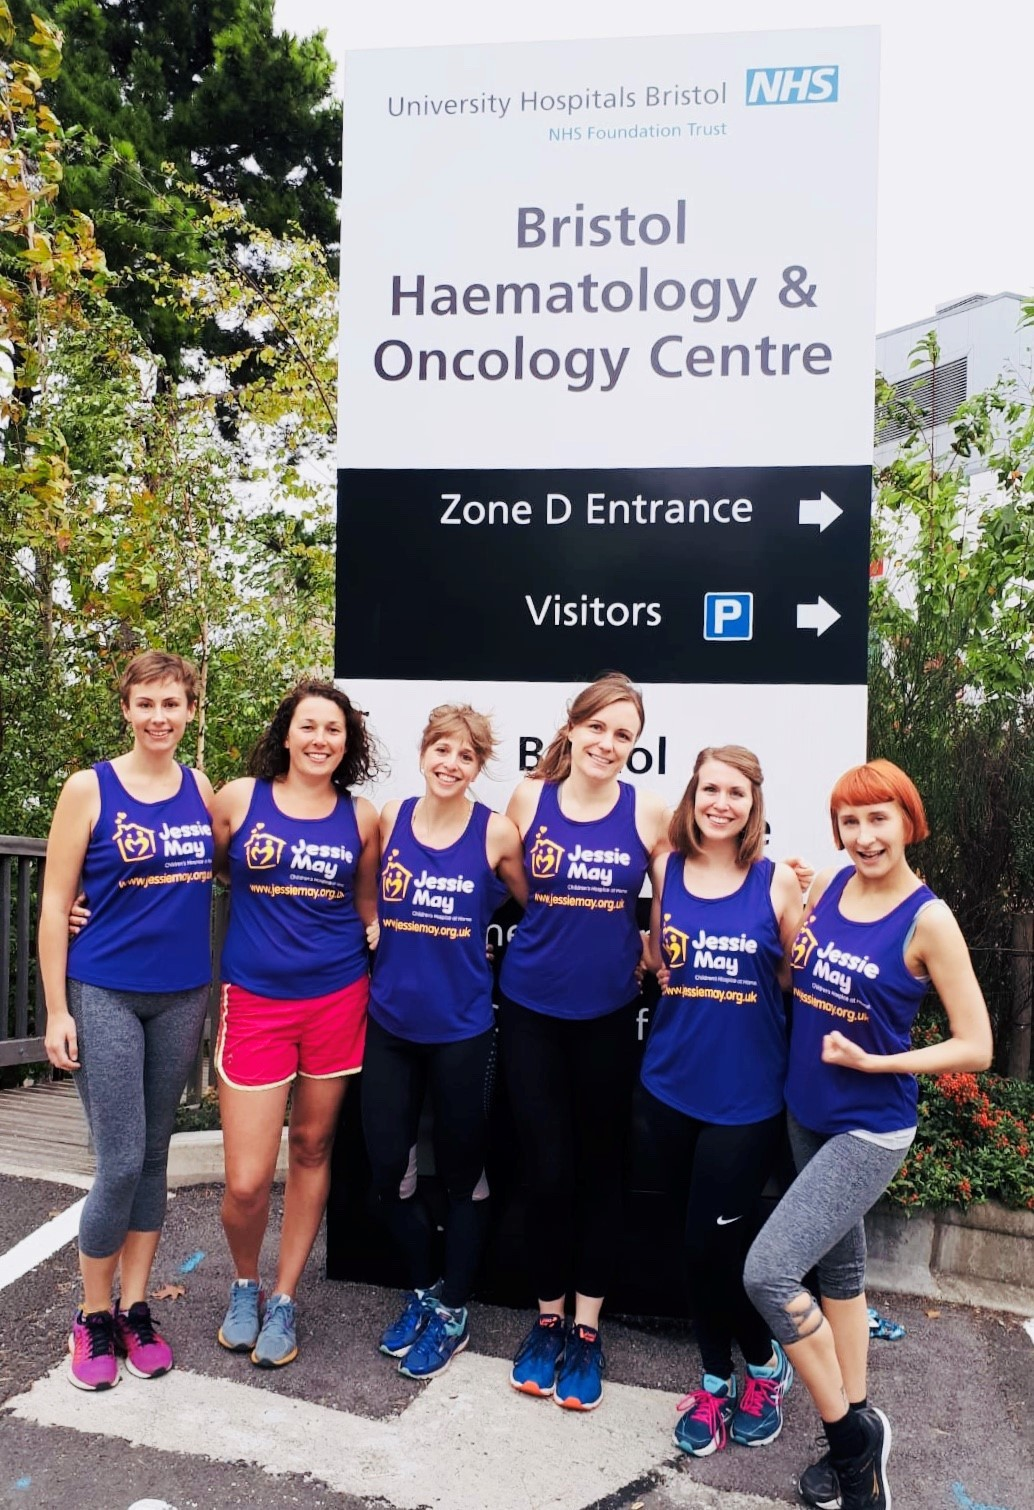 From left to right: Bristol Haematology and Oncology Centre Therapy Radiographers Amy Richardson, Ellie Cradock, Sarah Herbert, Emily Duguid, Sophie Owens and Lauren Beckett, who are taking on the Sodbury Slog for Jessie May